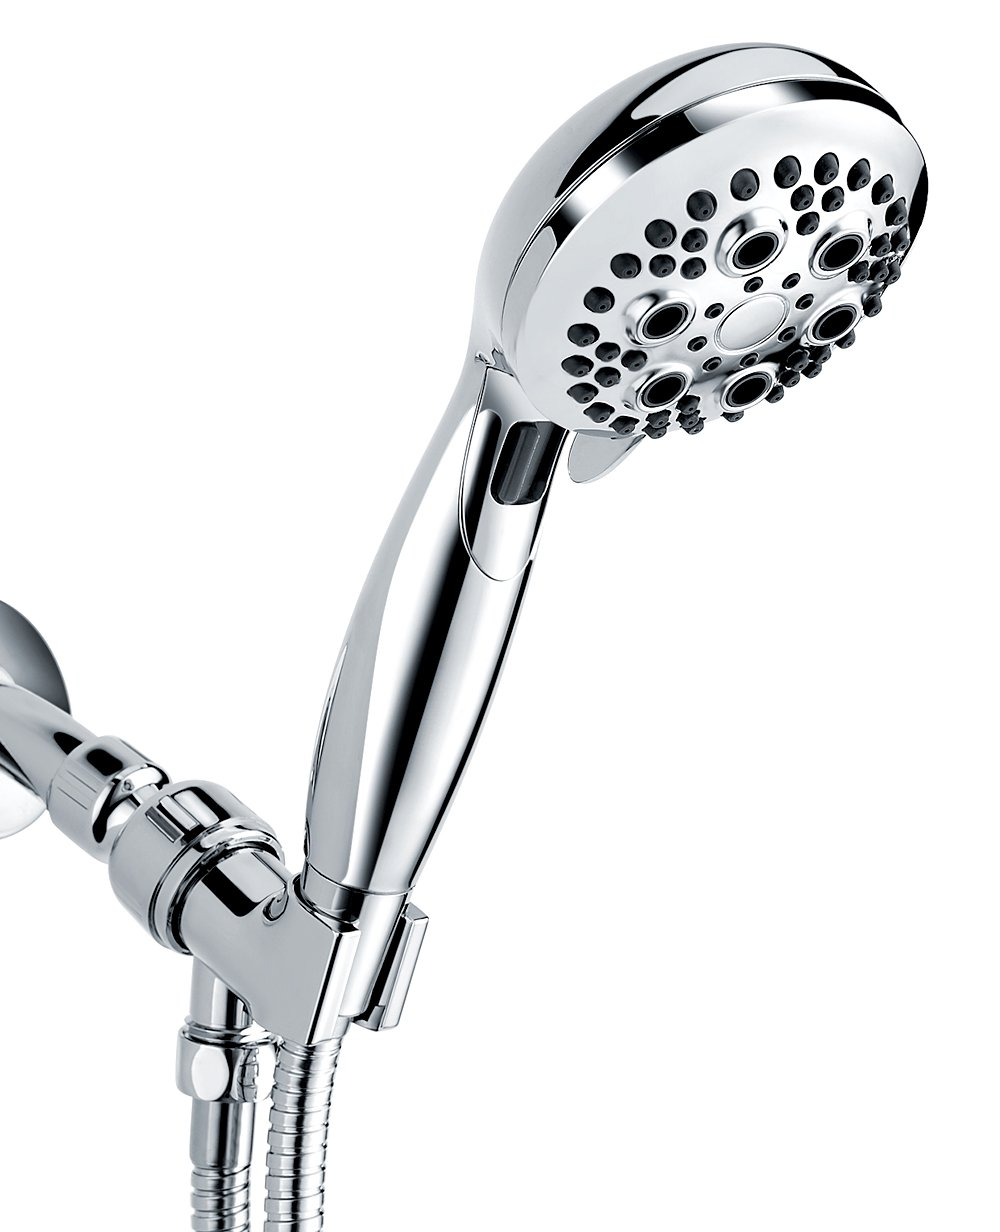 Handheld Shower Head, Wassern High Pressure 9 Setting 74 Jets Intake Air Rainfull Massage Spa Water Saving Trickle Button Flexible 60'' Stainless Steel Hose Angle Adjustable Bracket 3.5'' Chrome